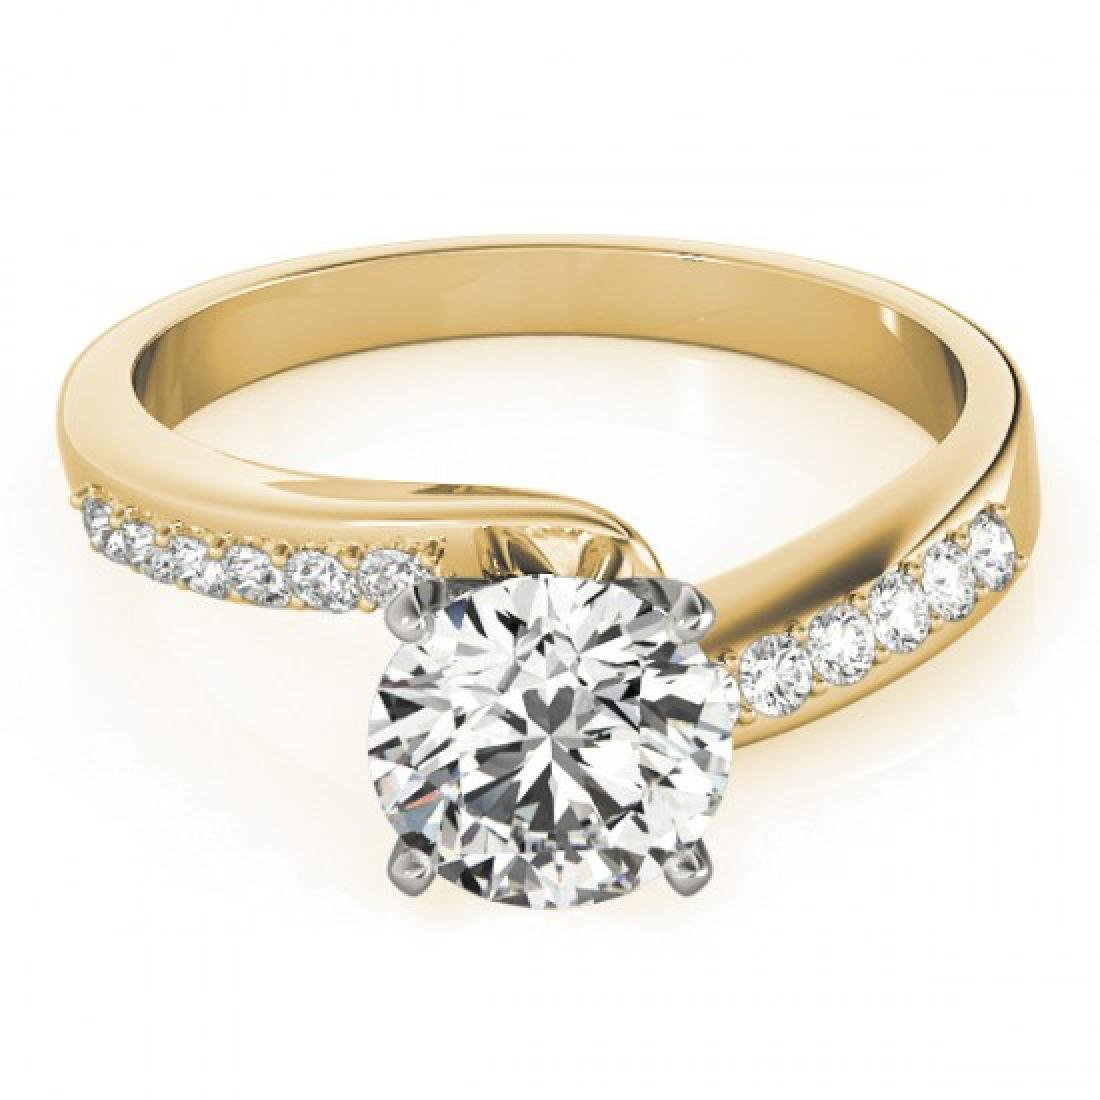 0.91 CTW Certified VS/SI Diamond Bypass Solitaire Ring